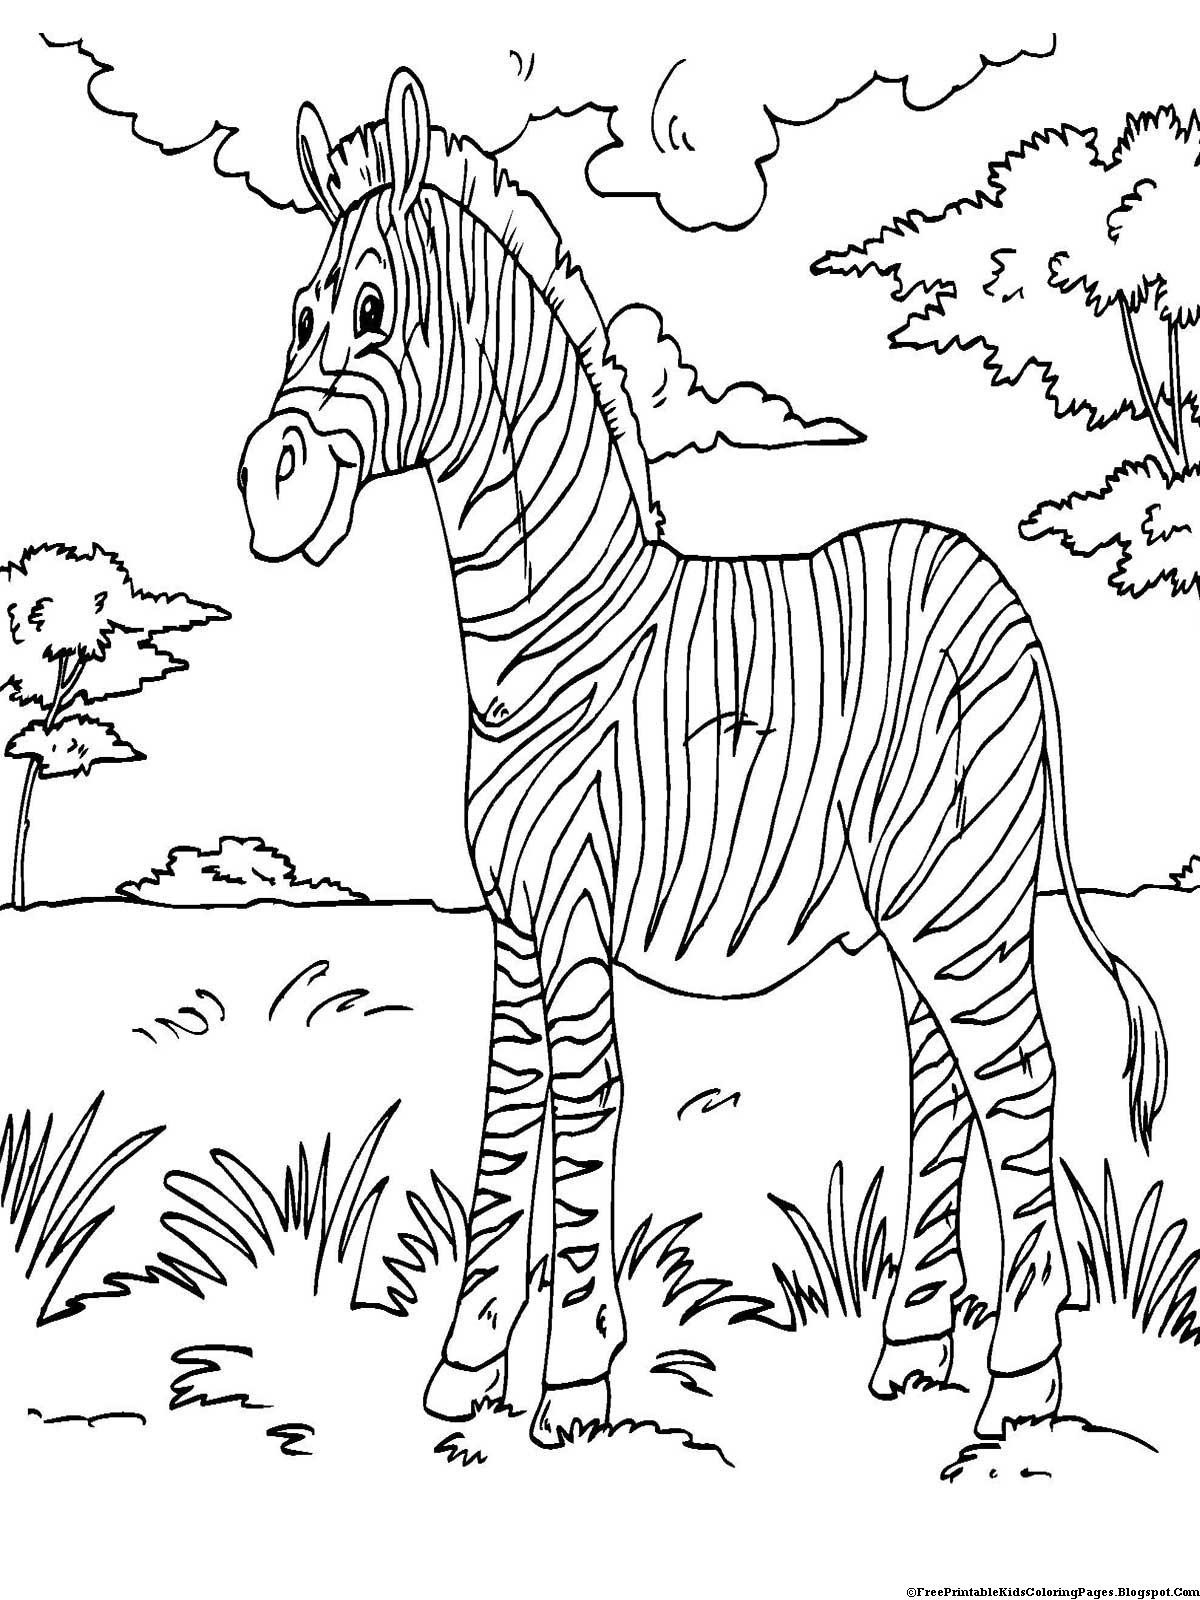 fun coloring pages to print easy coloring pages coloringrocks print fun coloring to pages